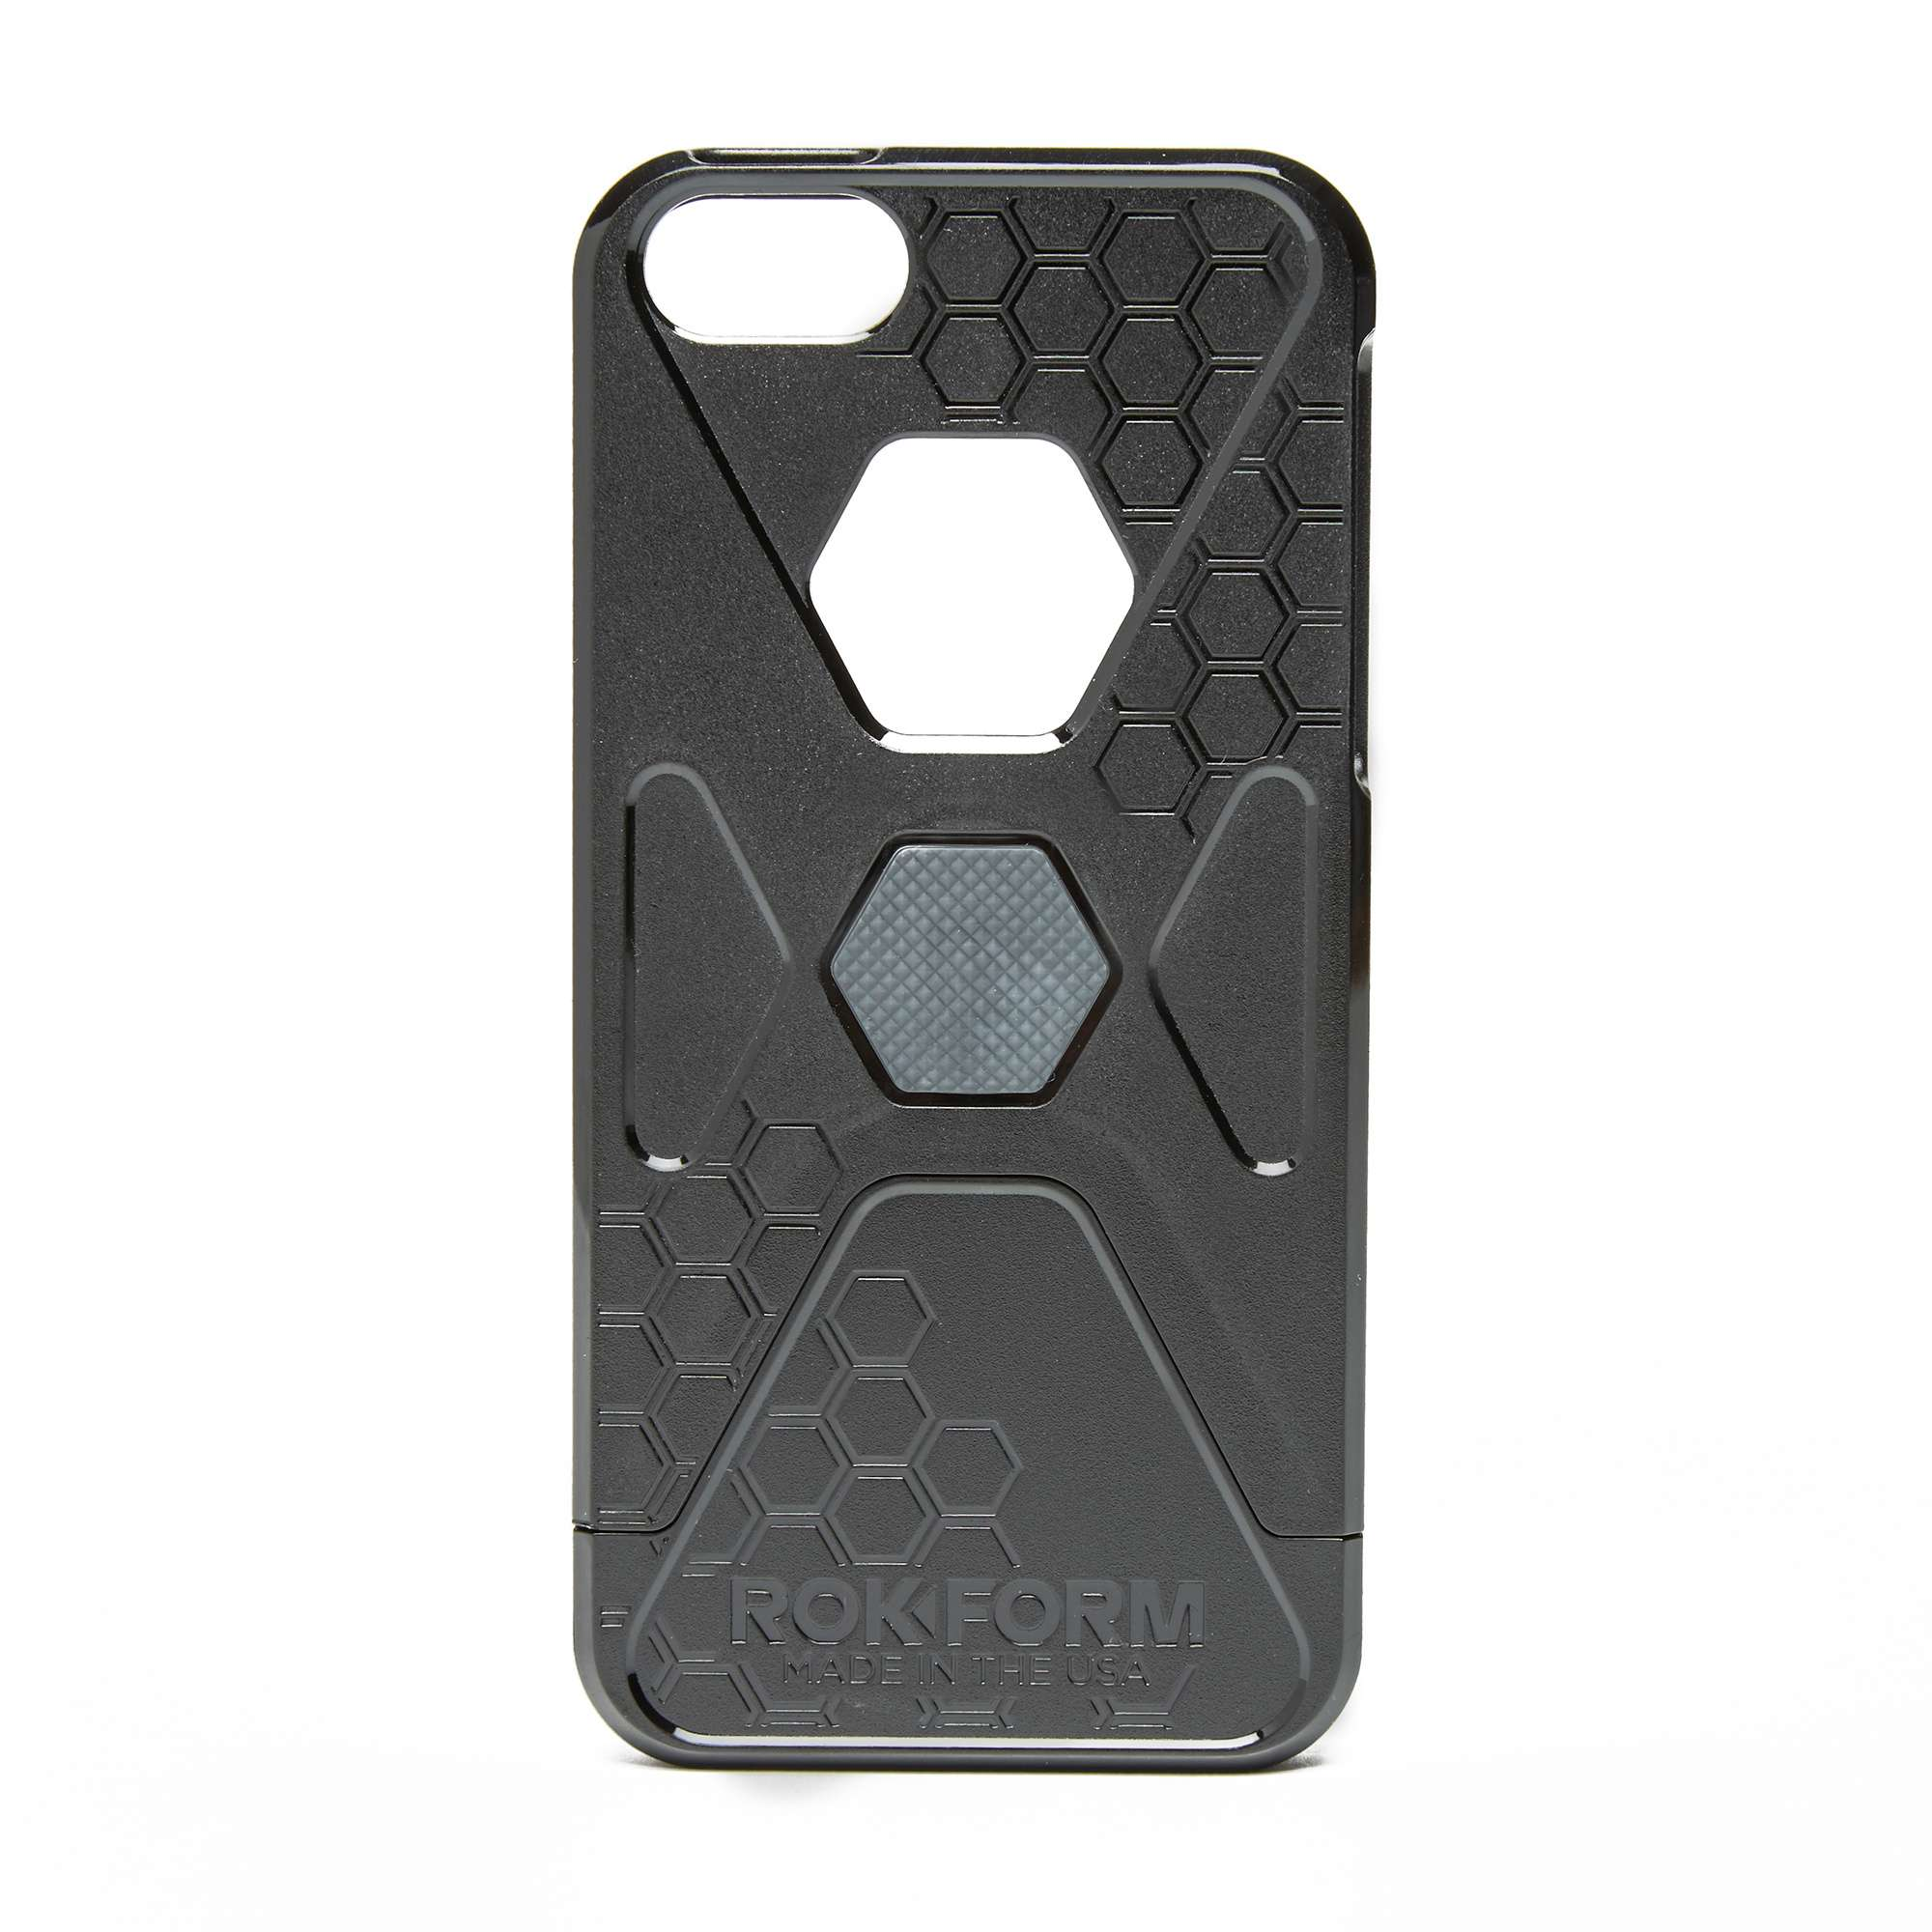 ROKFORM iPhone 5 Slim and Sleek Case